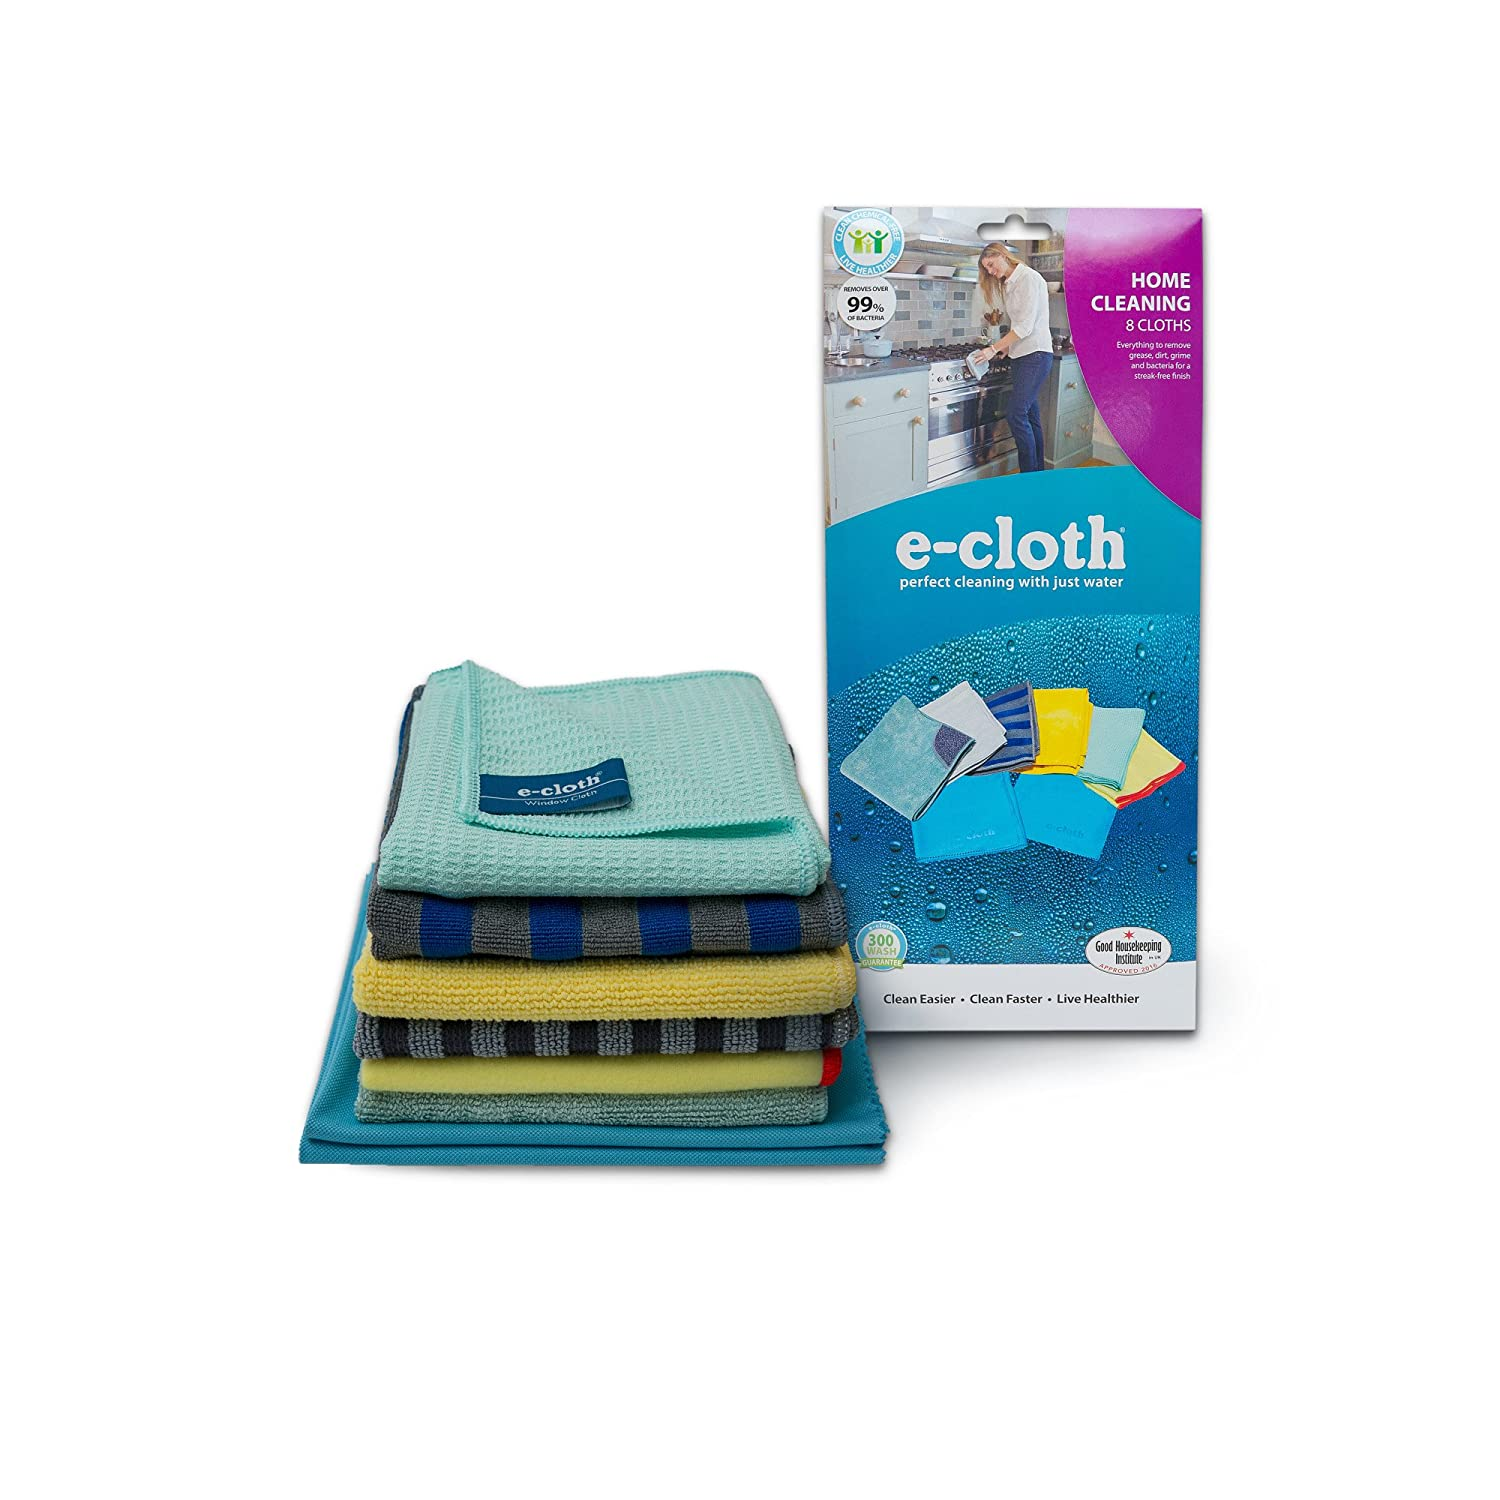 E-Cloth Home Cleaning Starter Pack for Chemical-Free Cleaning with Just Water - 5 Cloth Set E-Cloth Inc. 10901